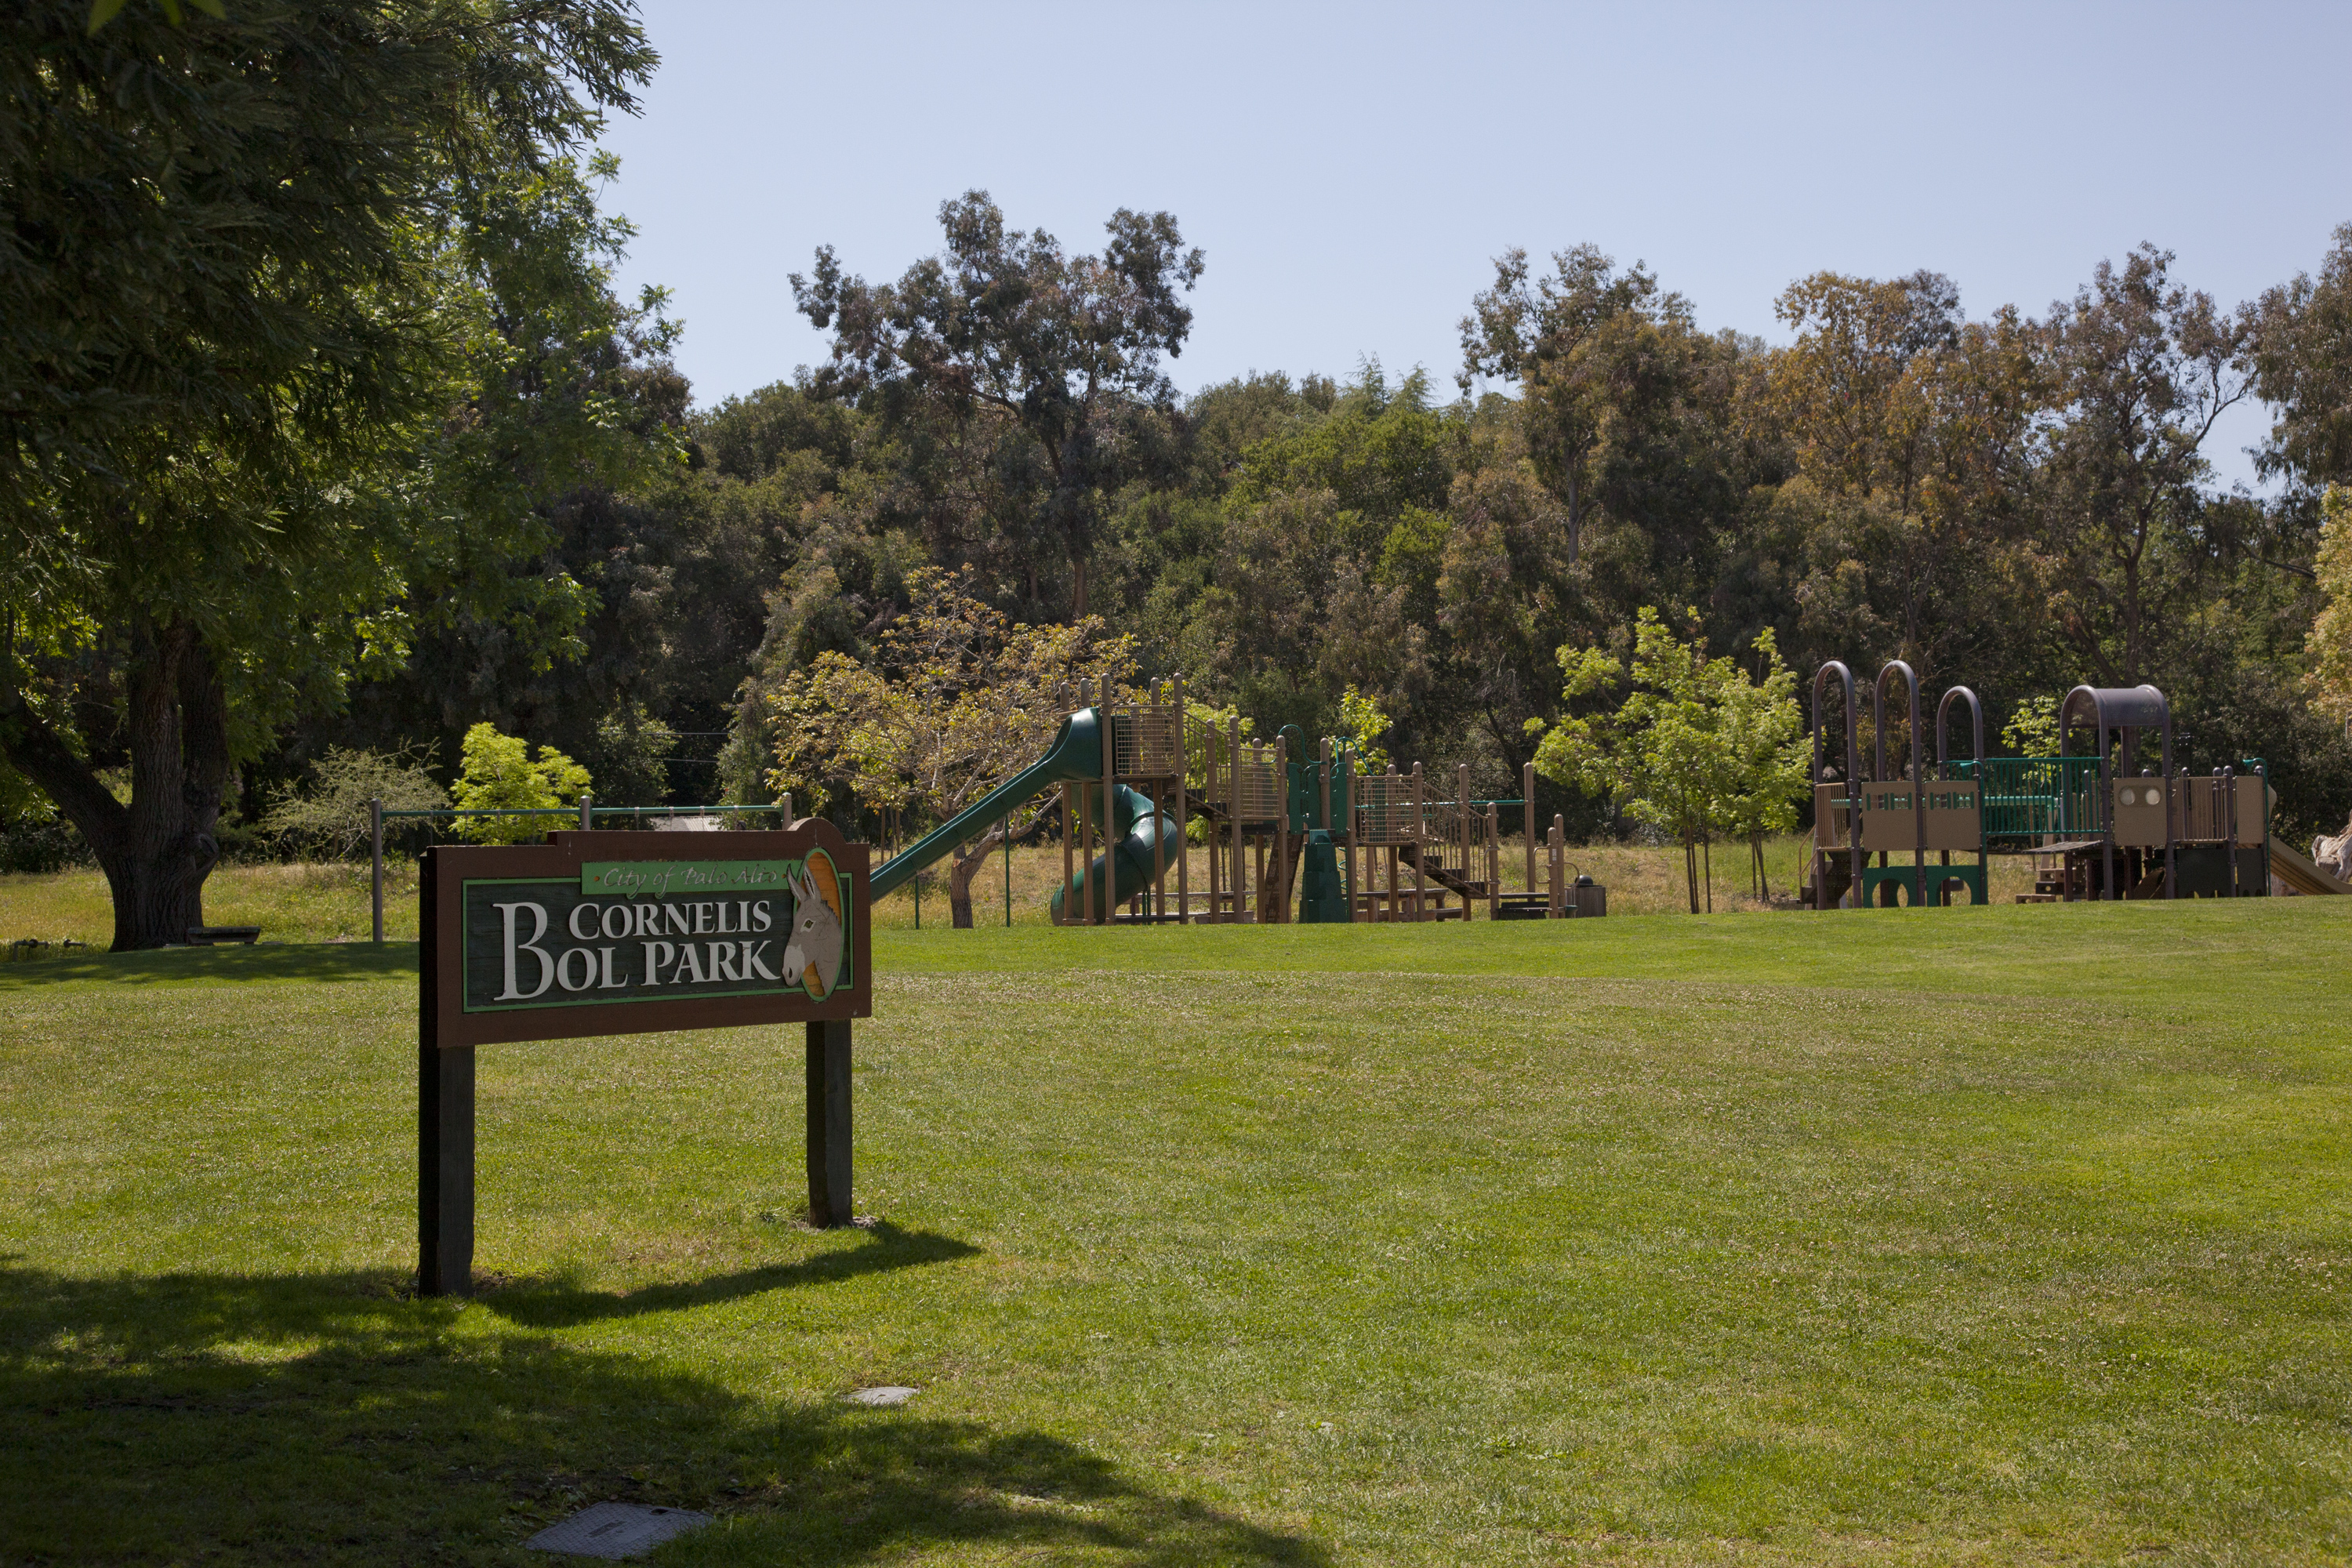 Optoutside Palo Alto and enjoy our parks this Friday